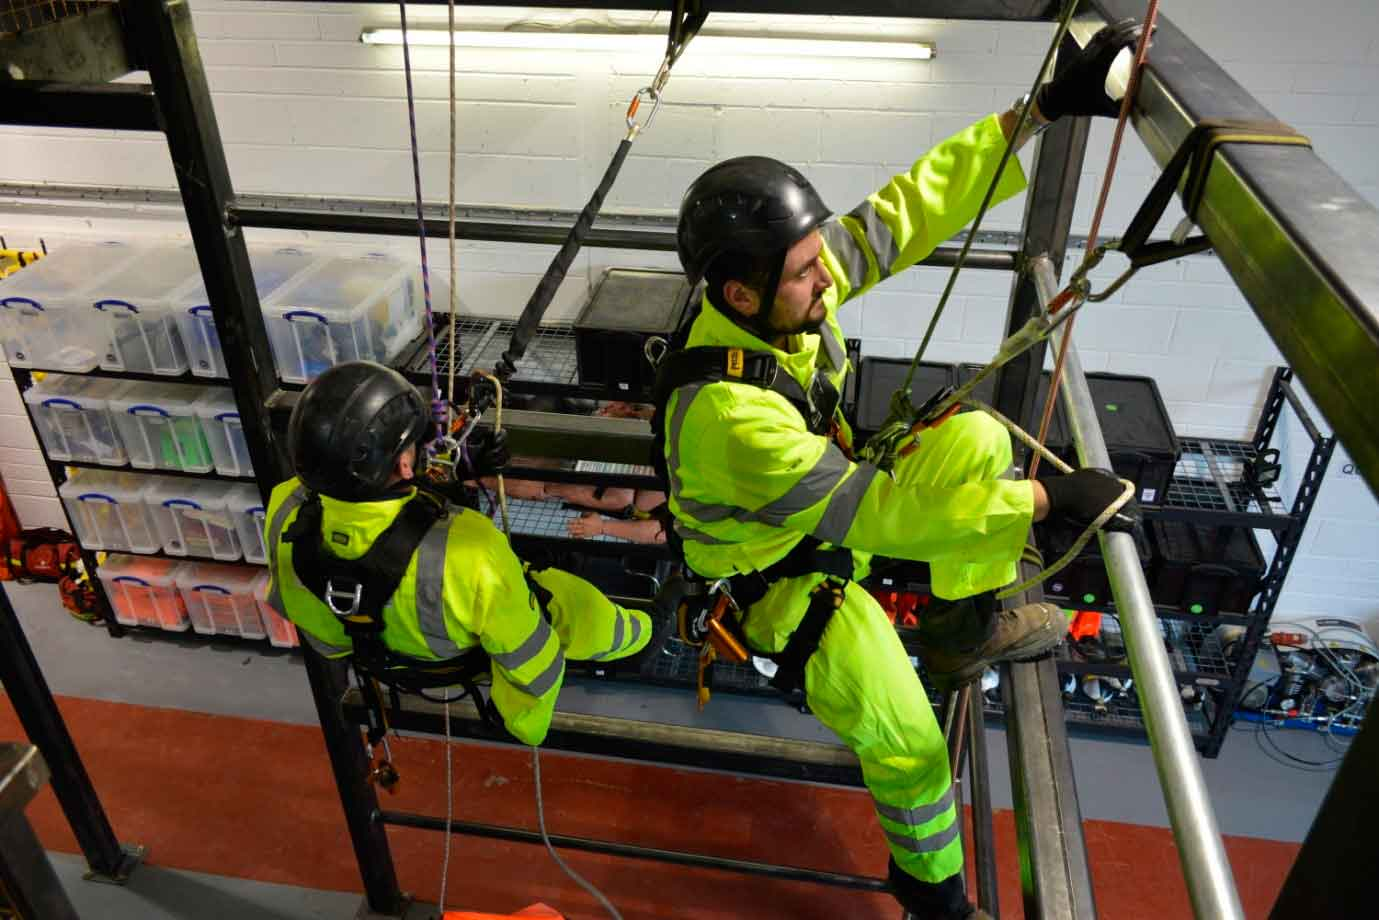 68 Clow Lifting Inspection Tags as well New Training Facility Now Open in addition Yates Rope Access Harness as well 84 Replacement Ladder Feet End Caps likewise Rooftop Systems. on tower rope access harness